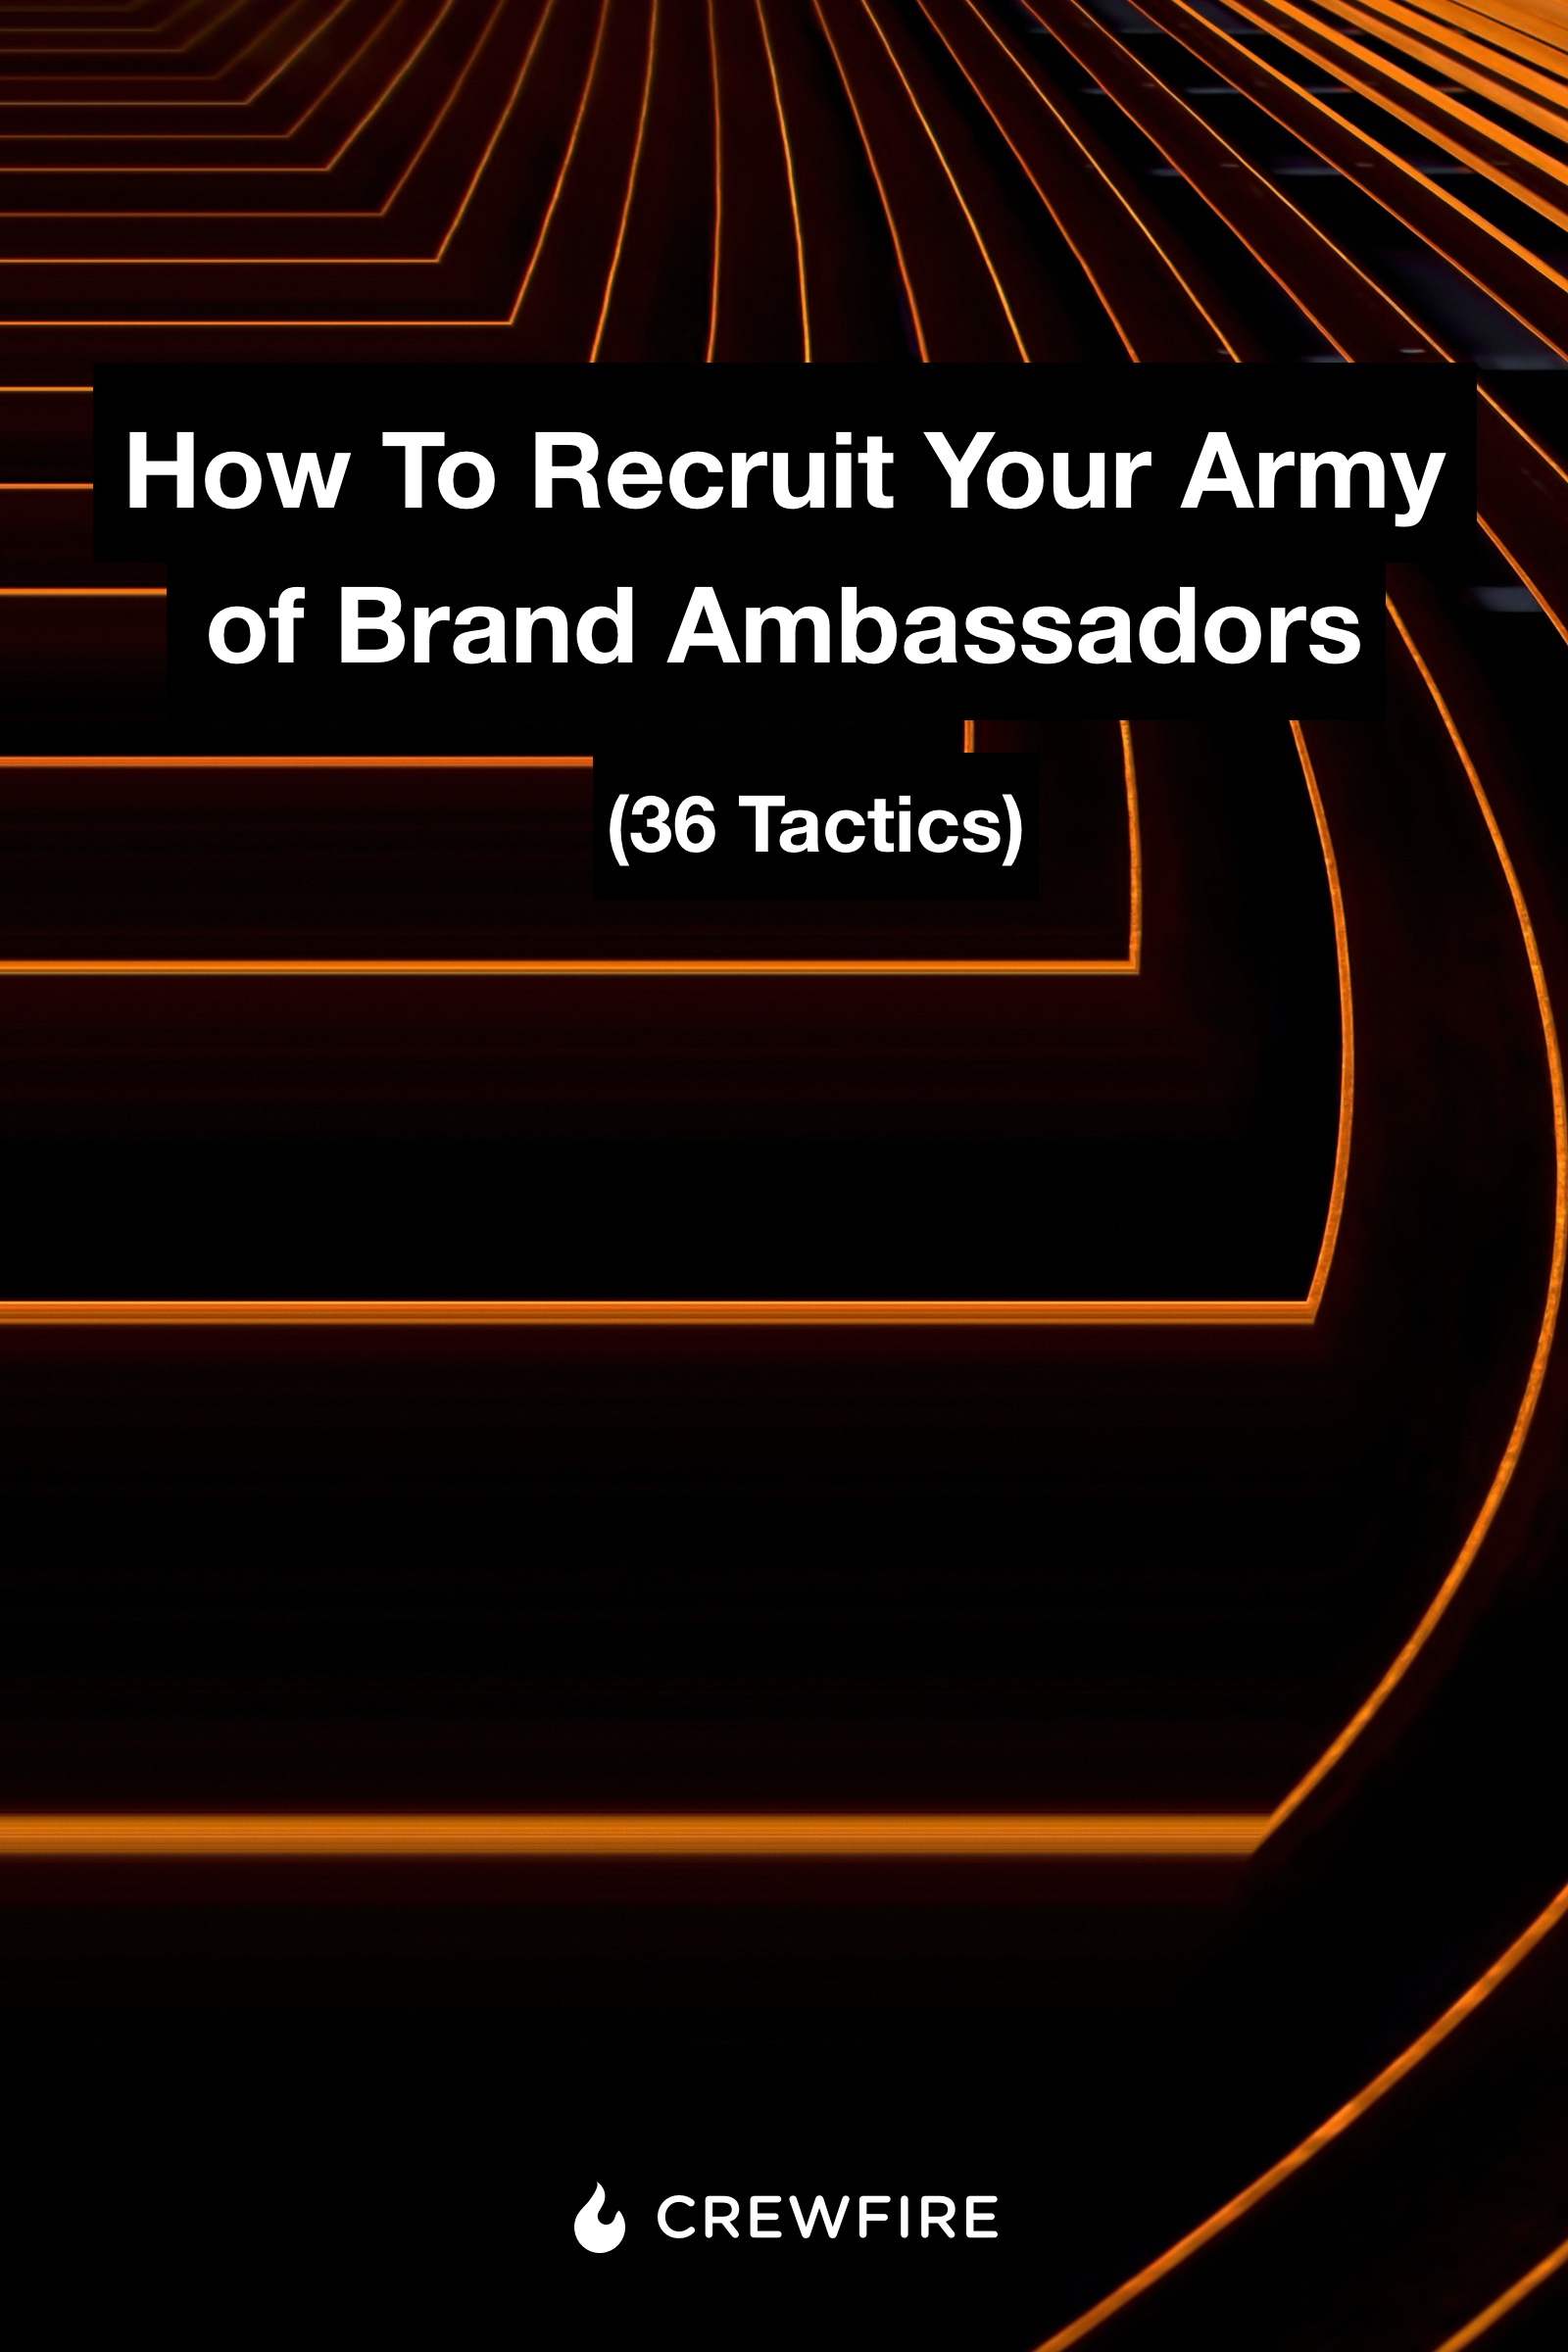 How To Recruit Your Army of Brand Ambassadors - PDF Download